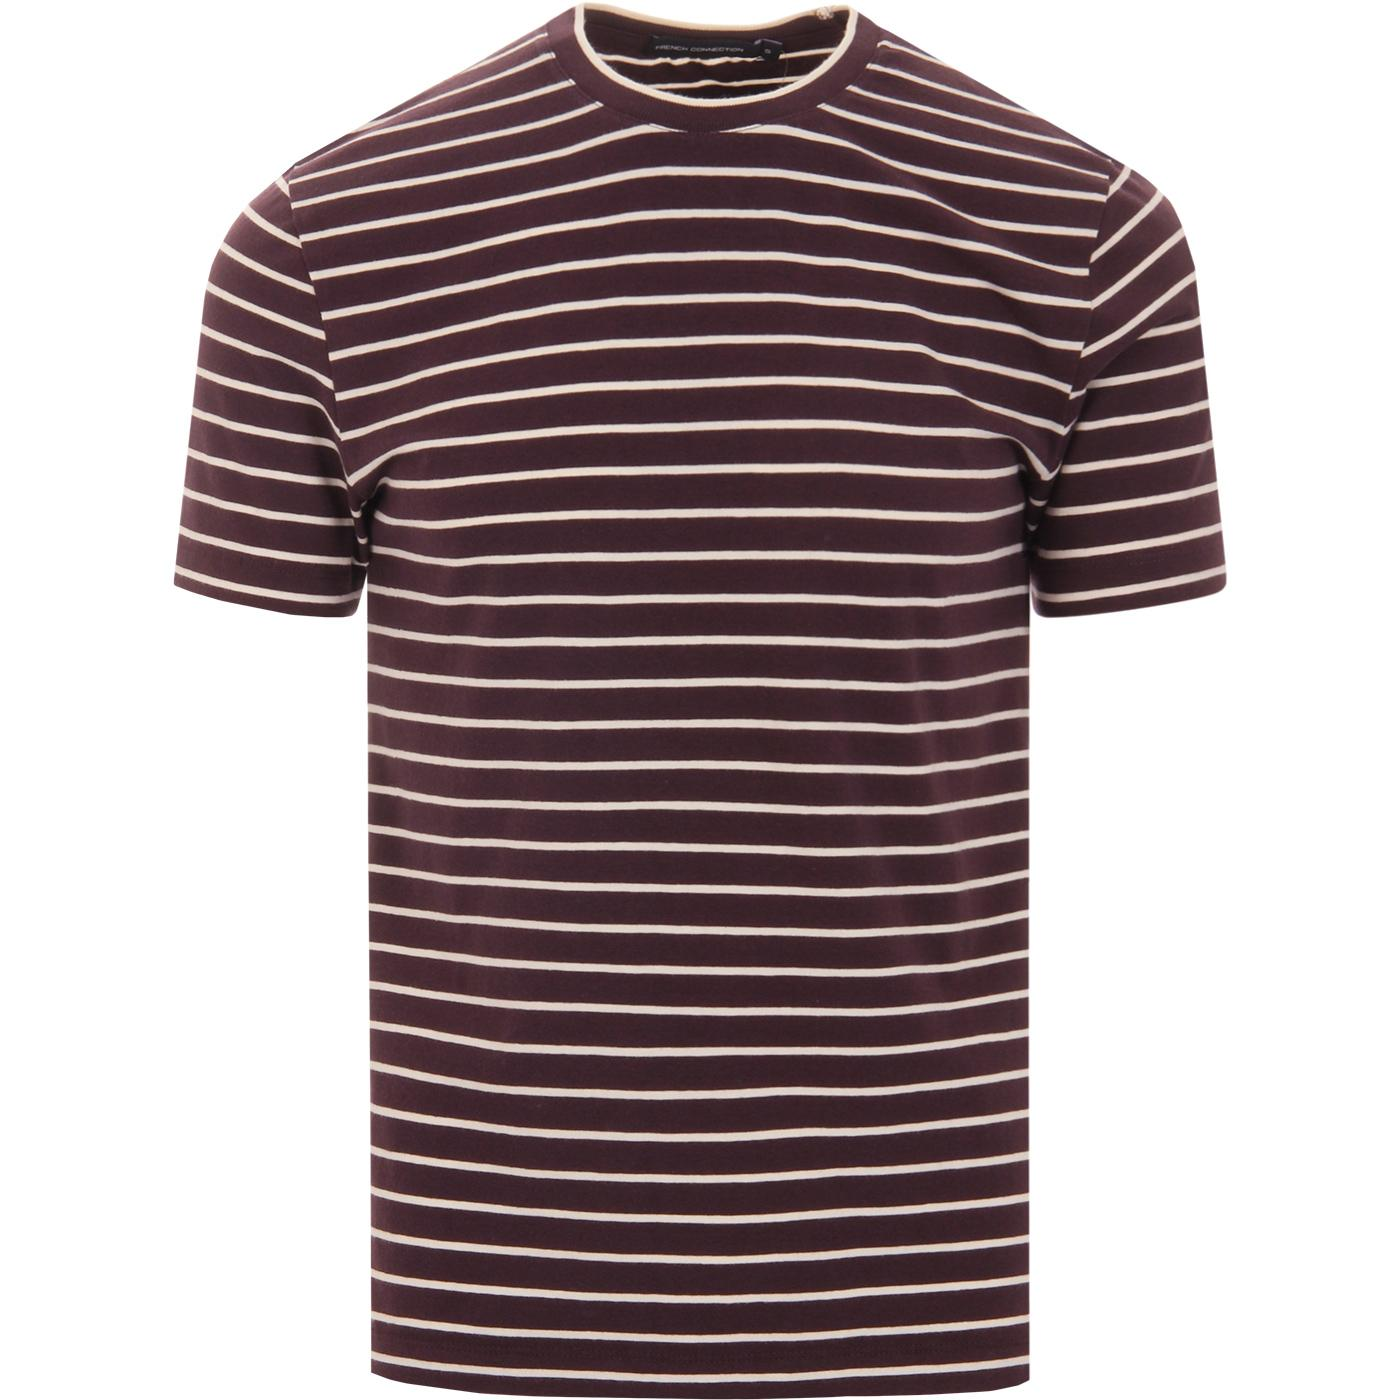 FRENCH CONNECTION Retro Mod Stripe Crew T-shirt